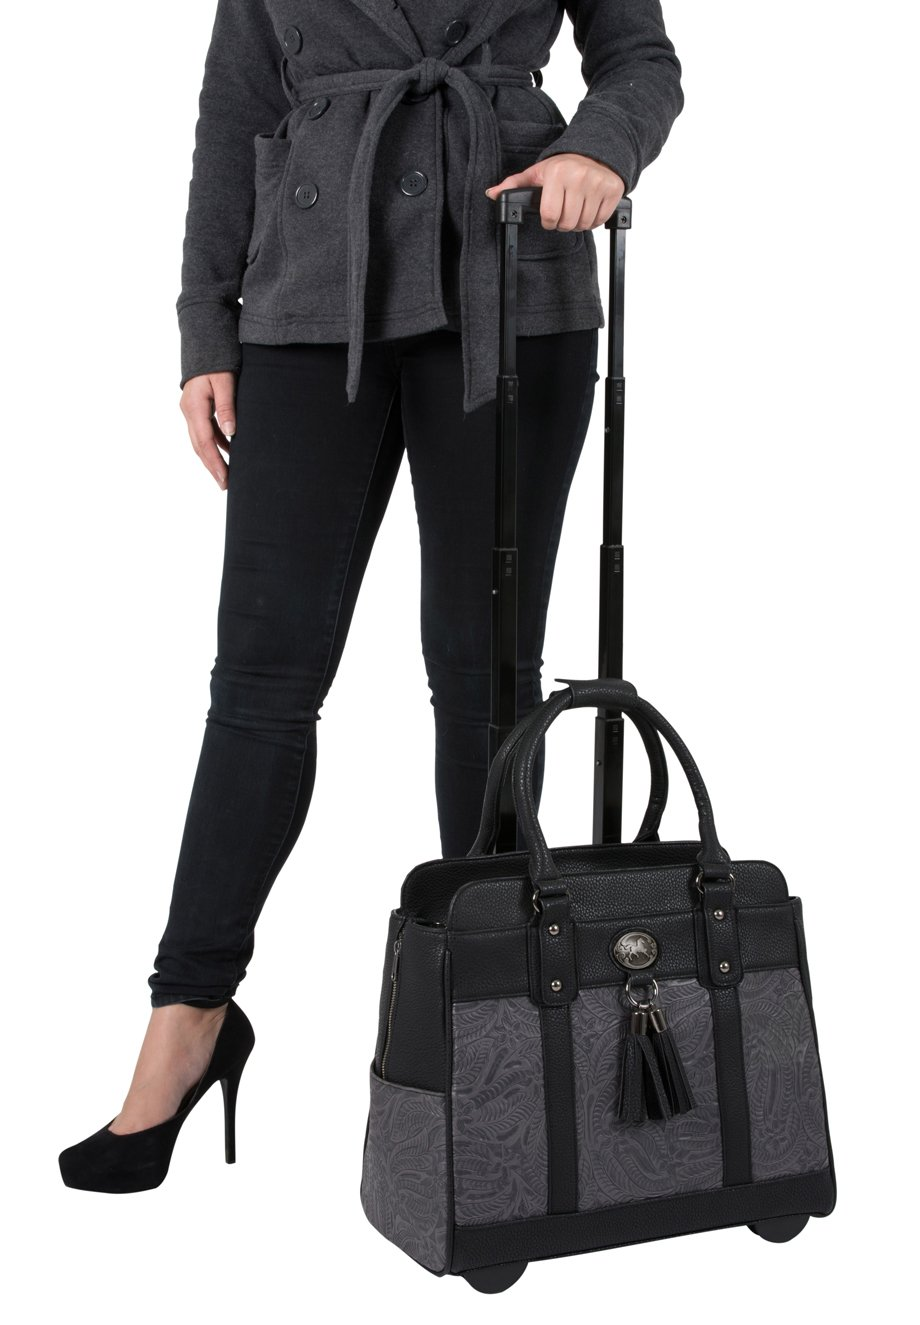 ''The Dallas'' Black & Grey Tooled Rolling iPad Tablet or Laptop Tote Carryall Bag by JKM and Company